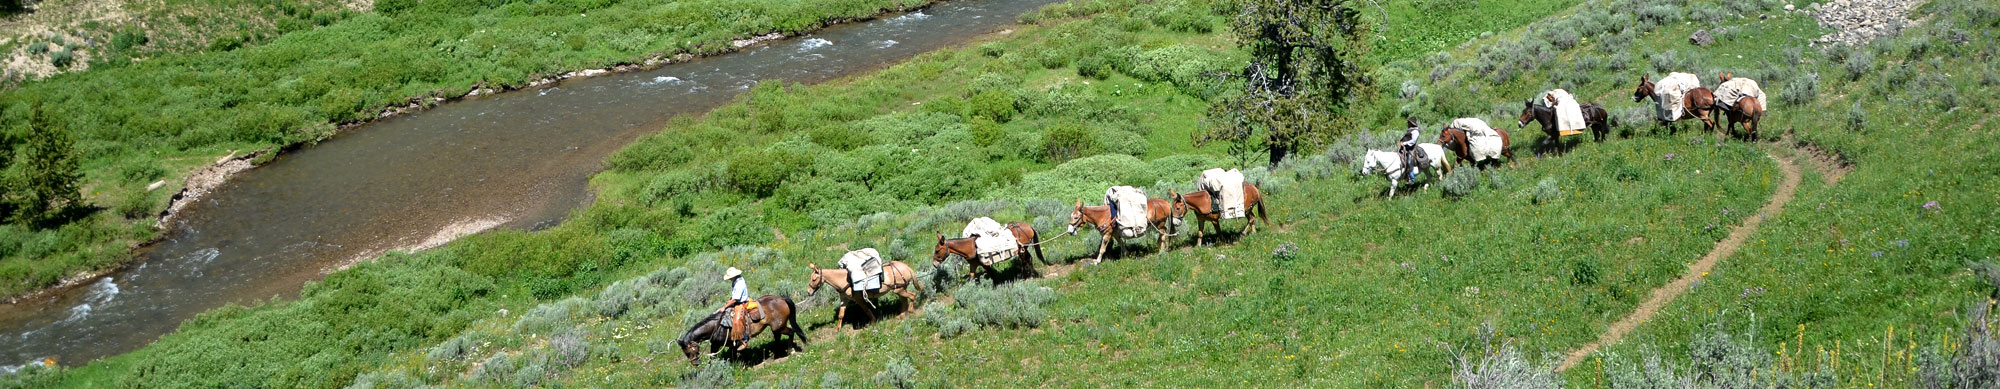 Line of Horses